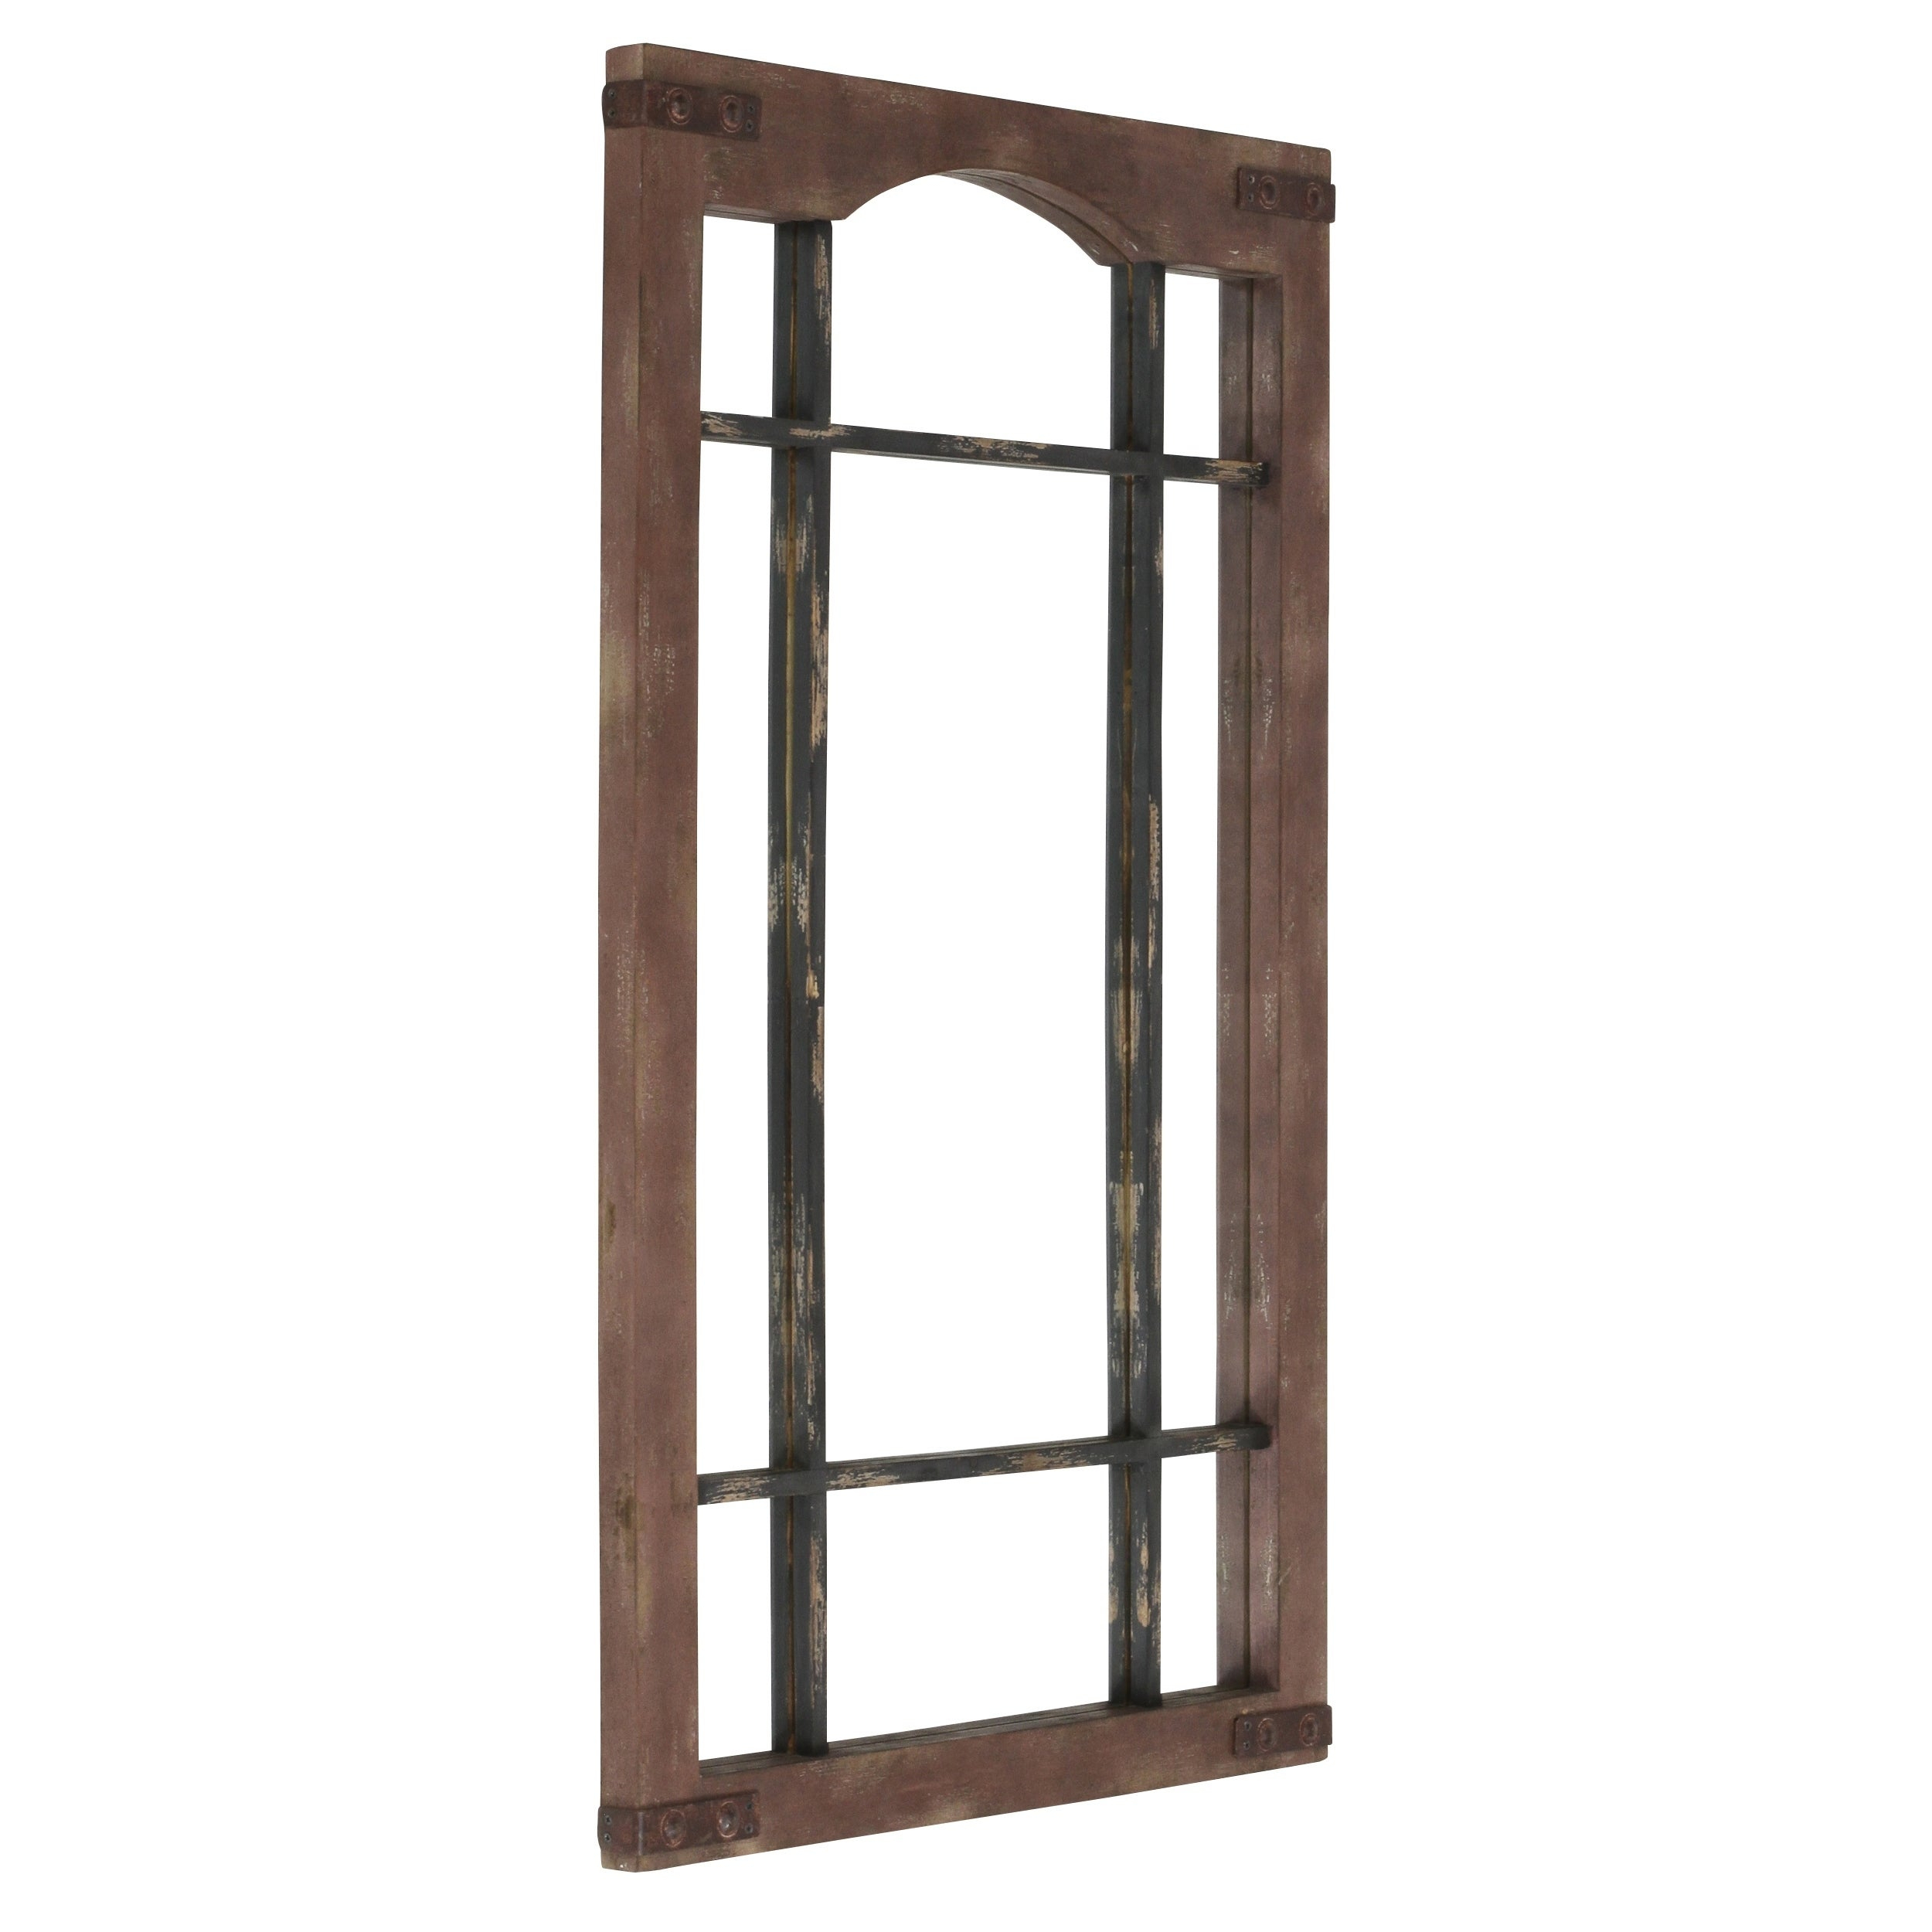 Sheridan Faux Window Wall Mirror – Brown With Regard To Faux Window Wood Wall Mirrors (View 10 of 30)